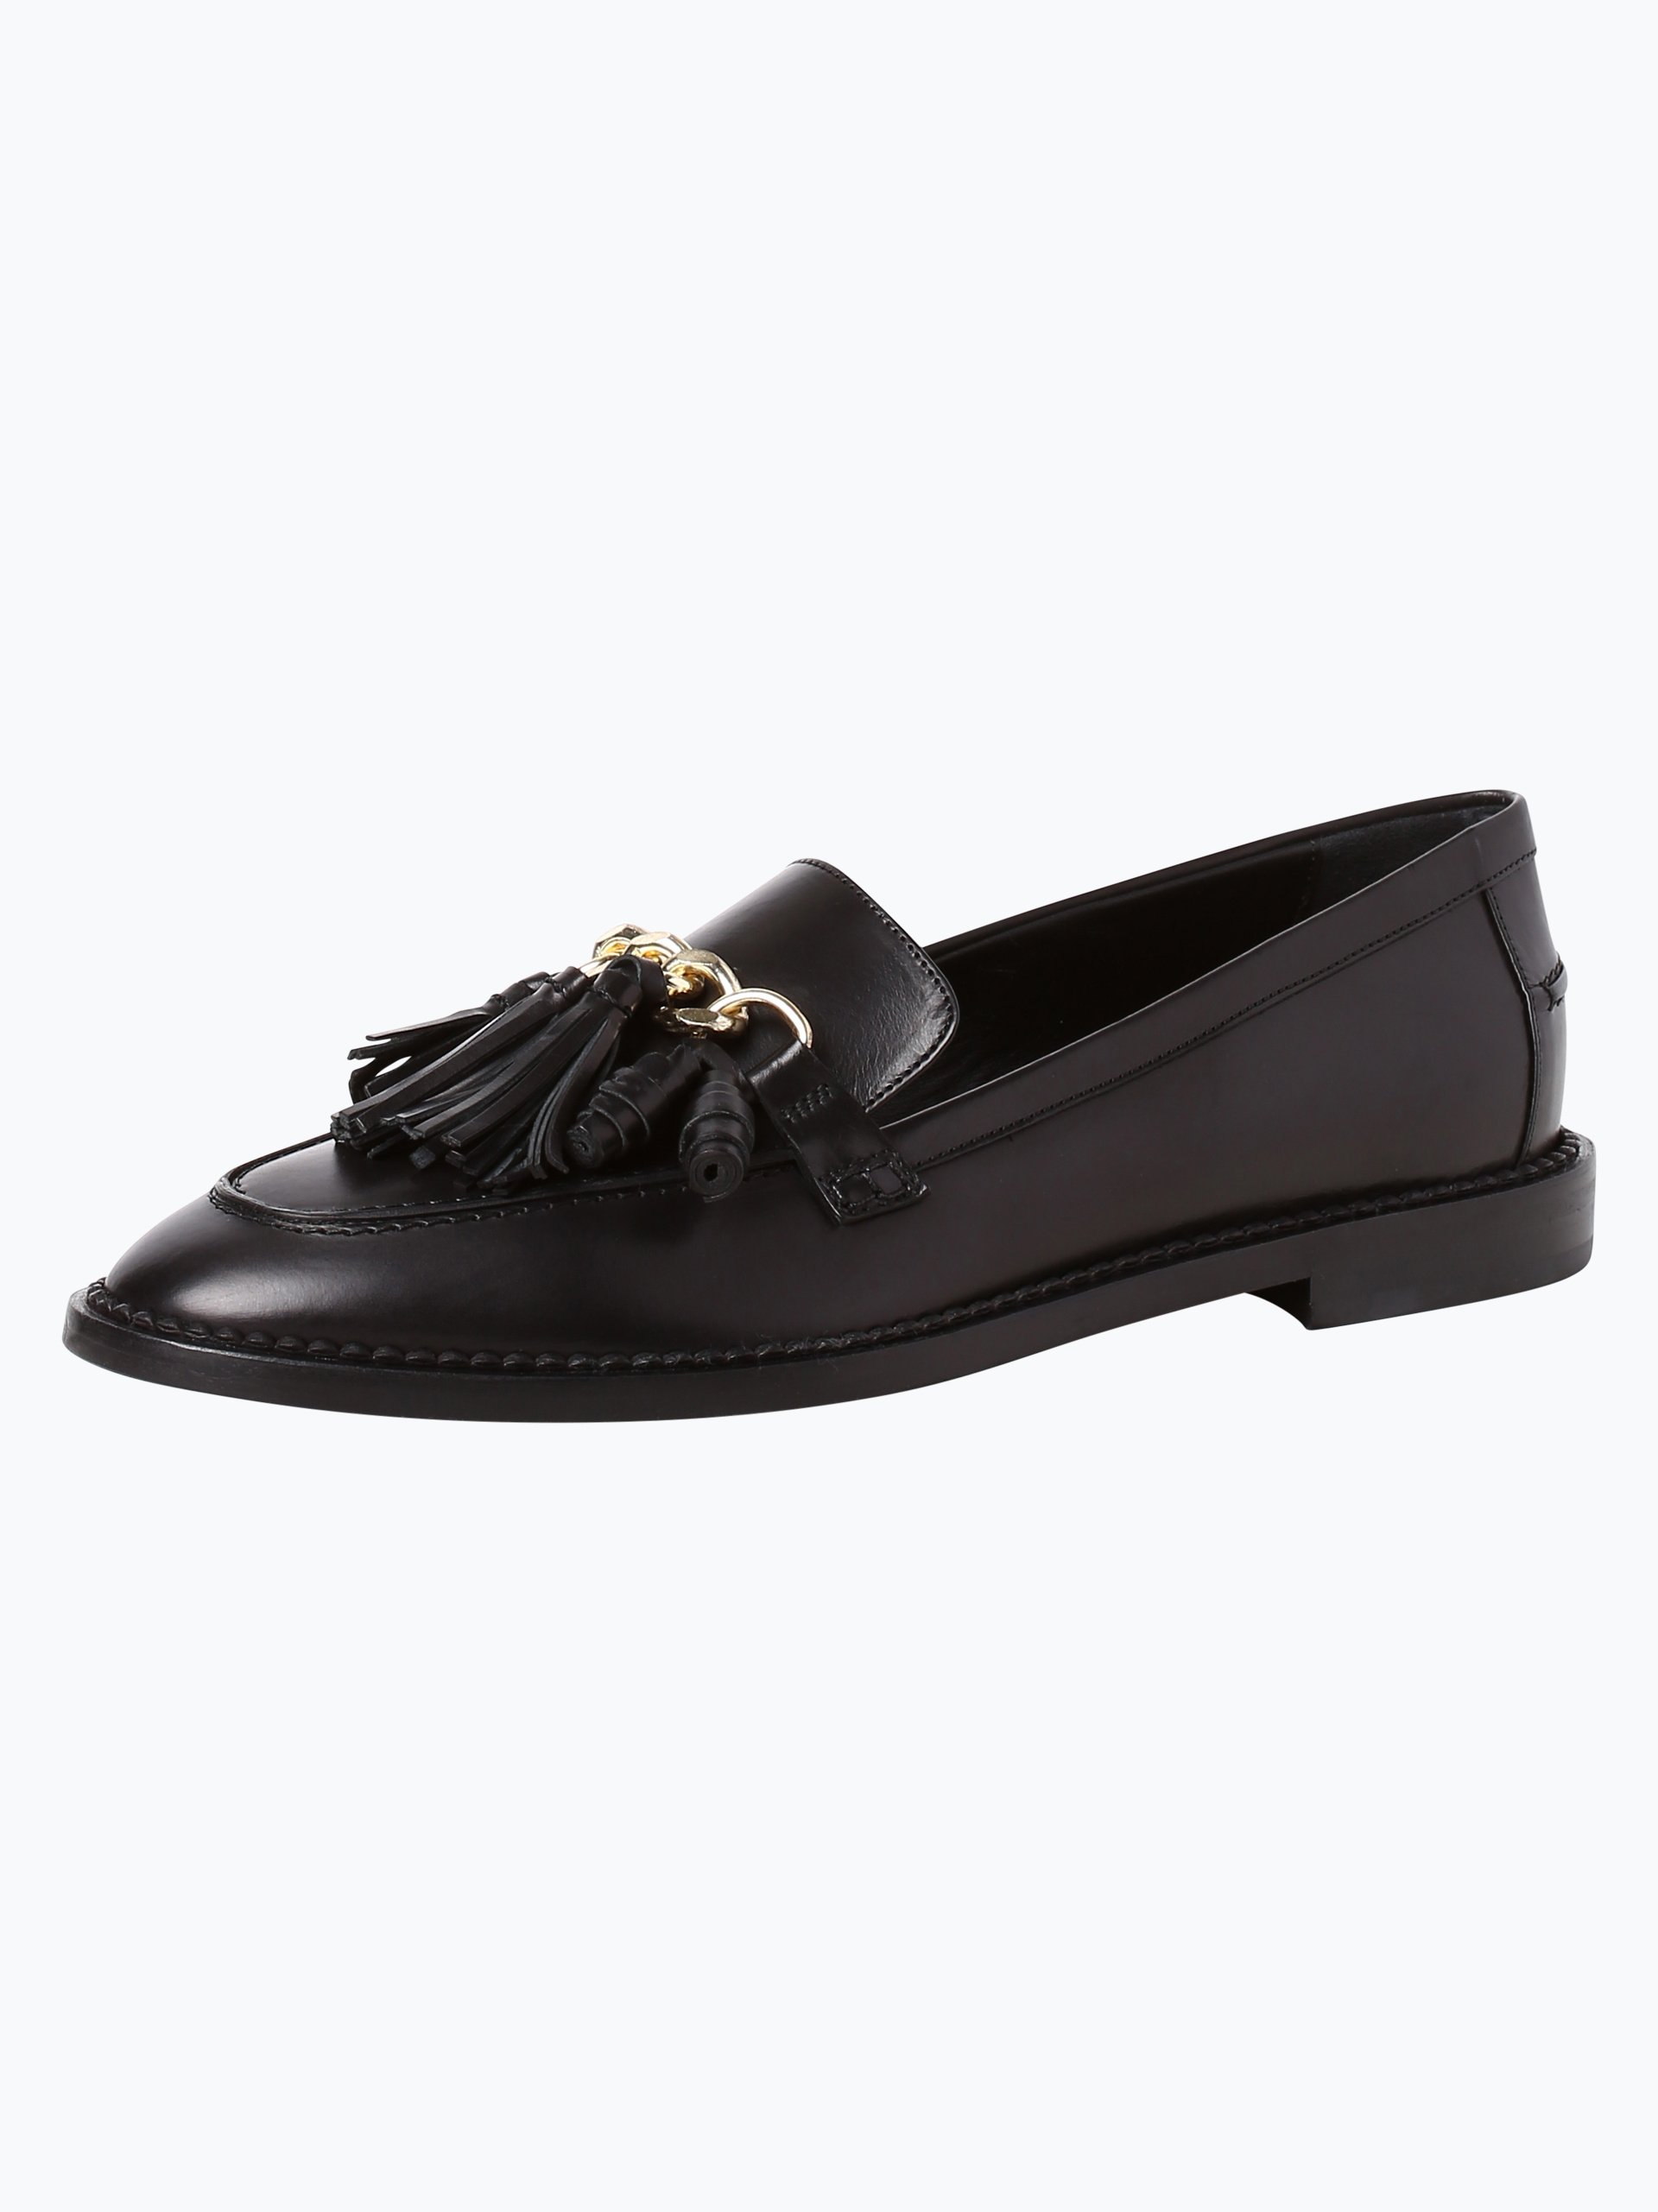 Tommy Hilfiger Loafer Shoes Online